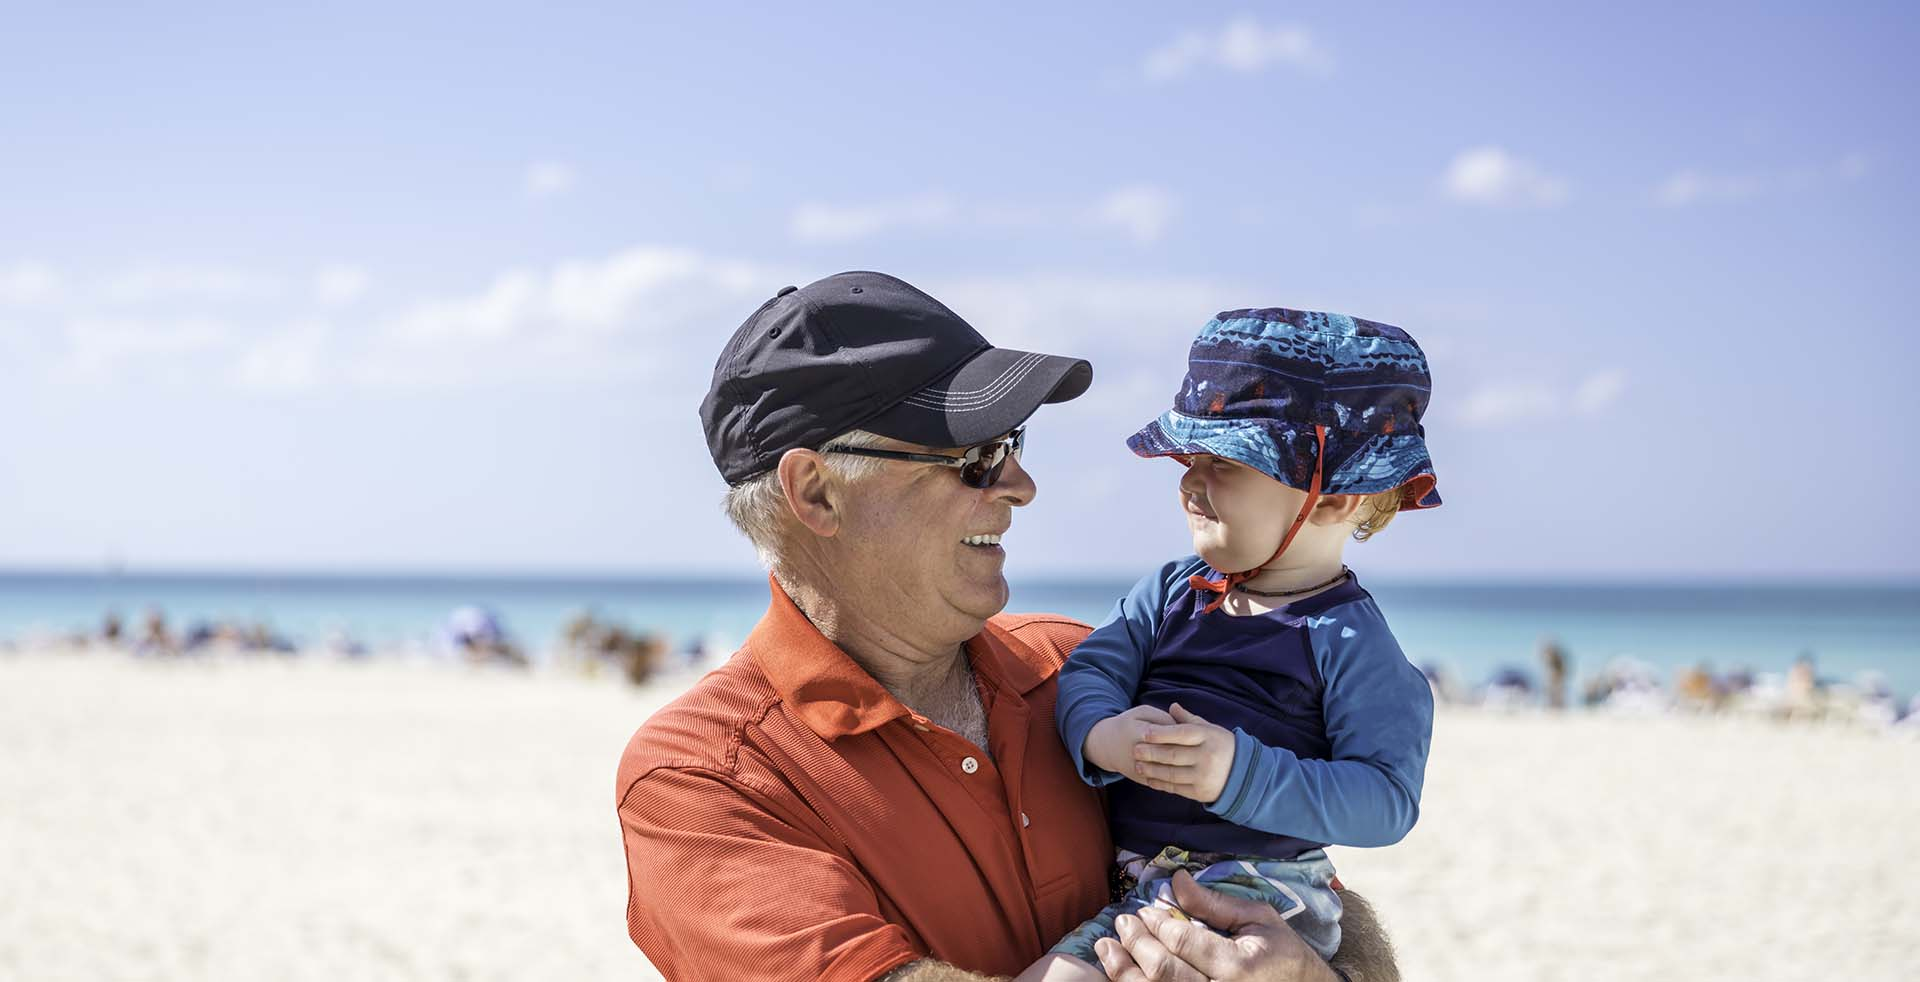 Man and toddler on beach